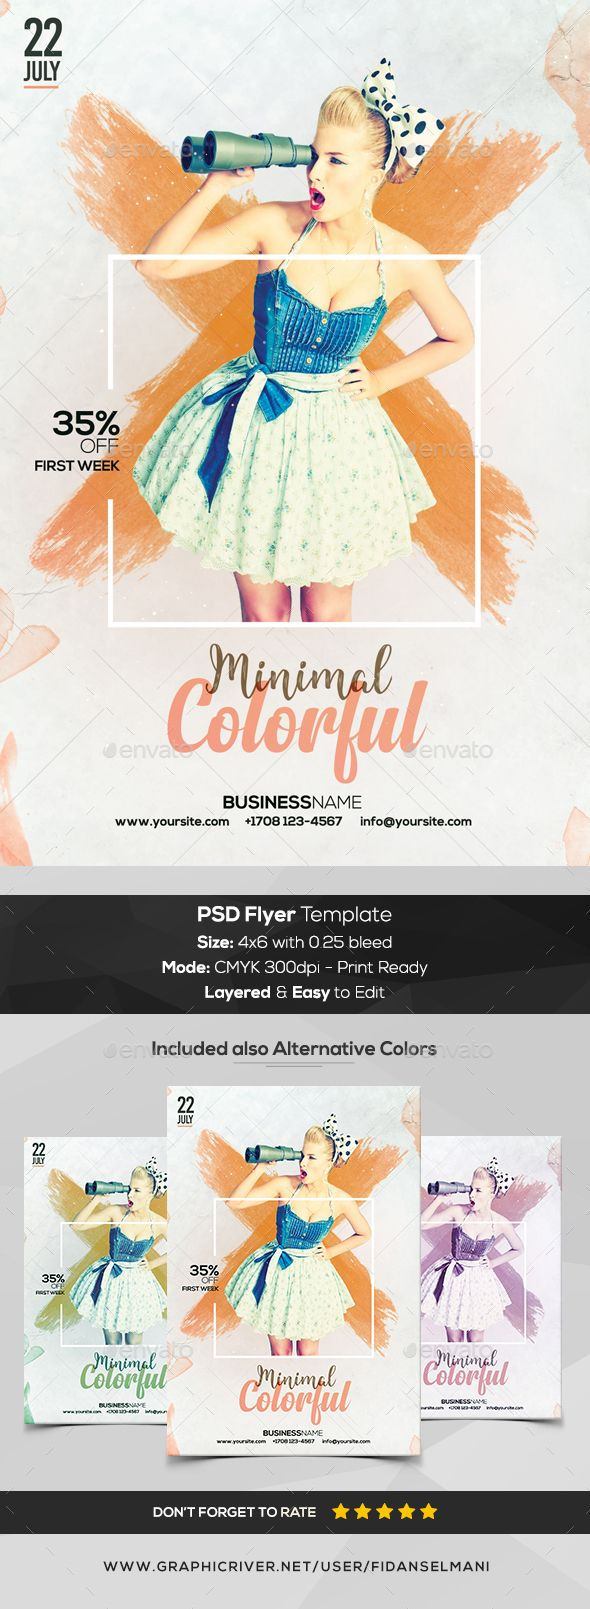 Colorful Minimal - PSD #Flyer Template - Flyers Print Templates Download here:  https://graphicriver.net/item/colorful-minimal-psd-flyer-template/20288239?ref=alena994